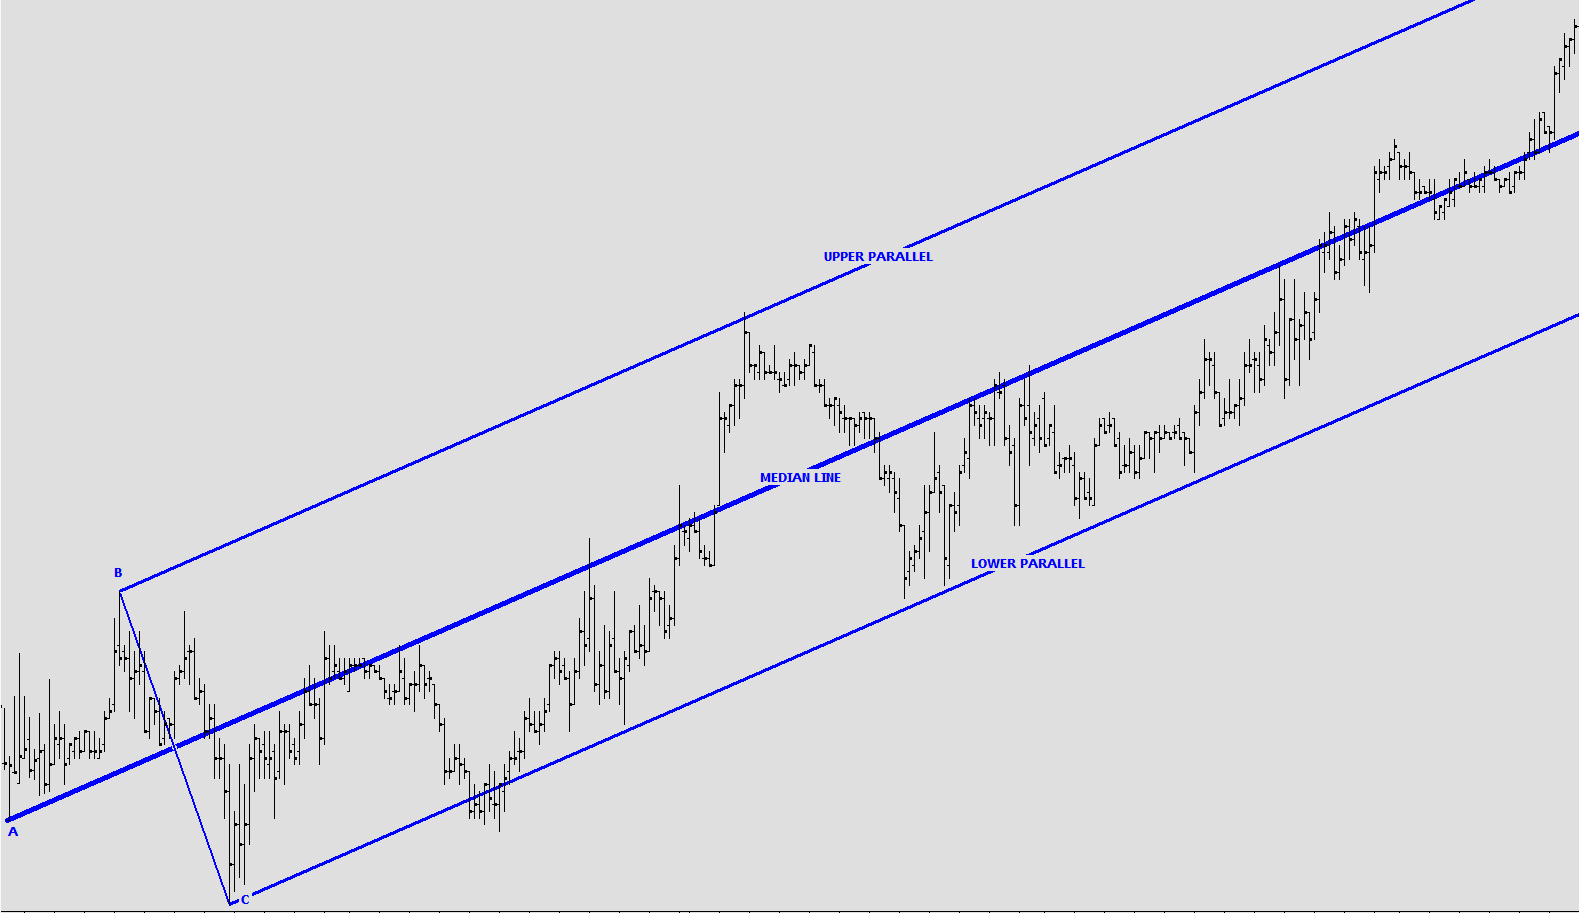 It Is Apparent That The Upper And Lower Parallels In This Instance  Accurately Show Support And Resistance For The Vehicle Whilst The Median  Line Shows The